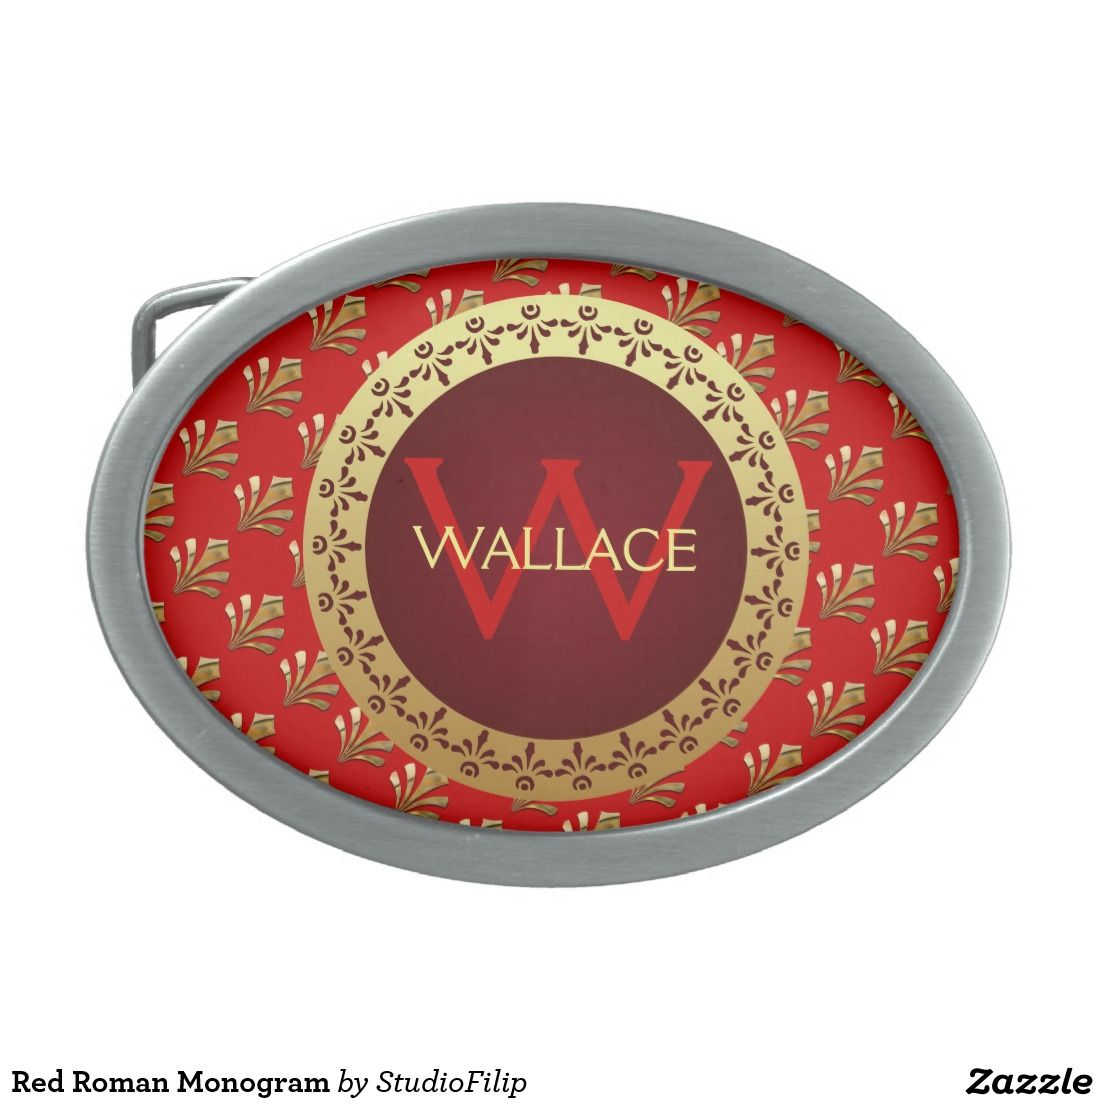 Red Roman Monogram Oval Belt Buckle | 15% OFF with coupon code KICKOFFZYEAR | Offer is valid through January 10, 2016 11:59PM PT.